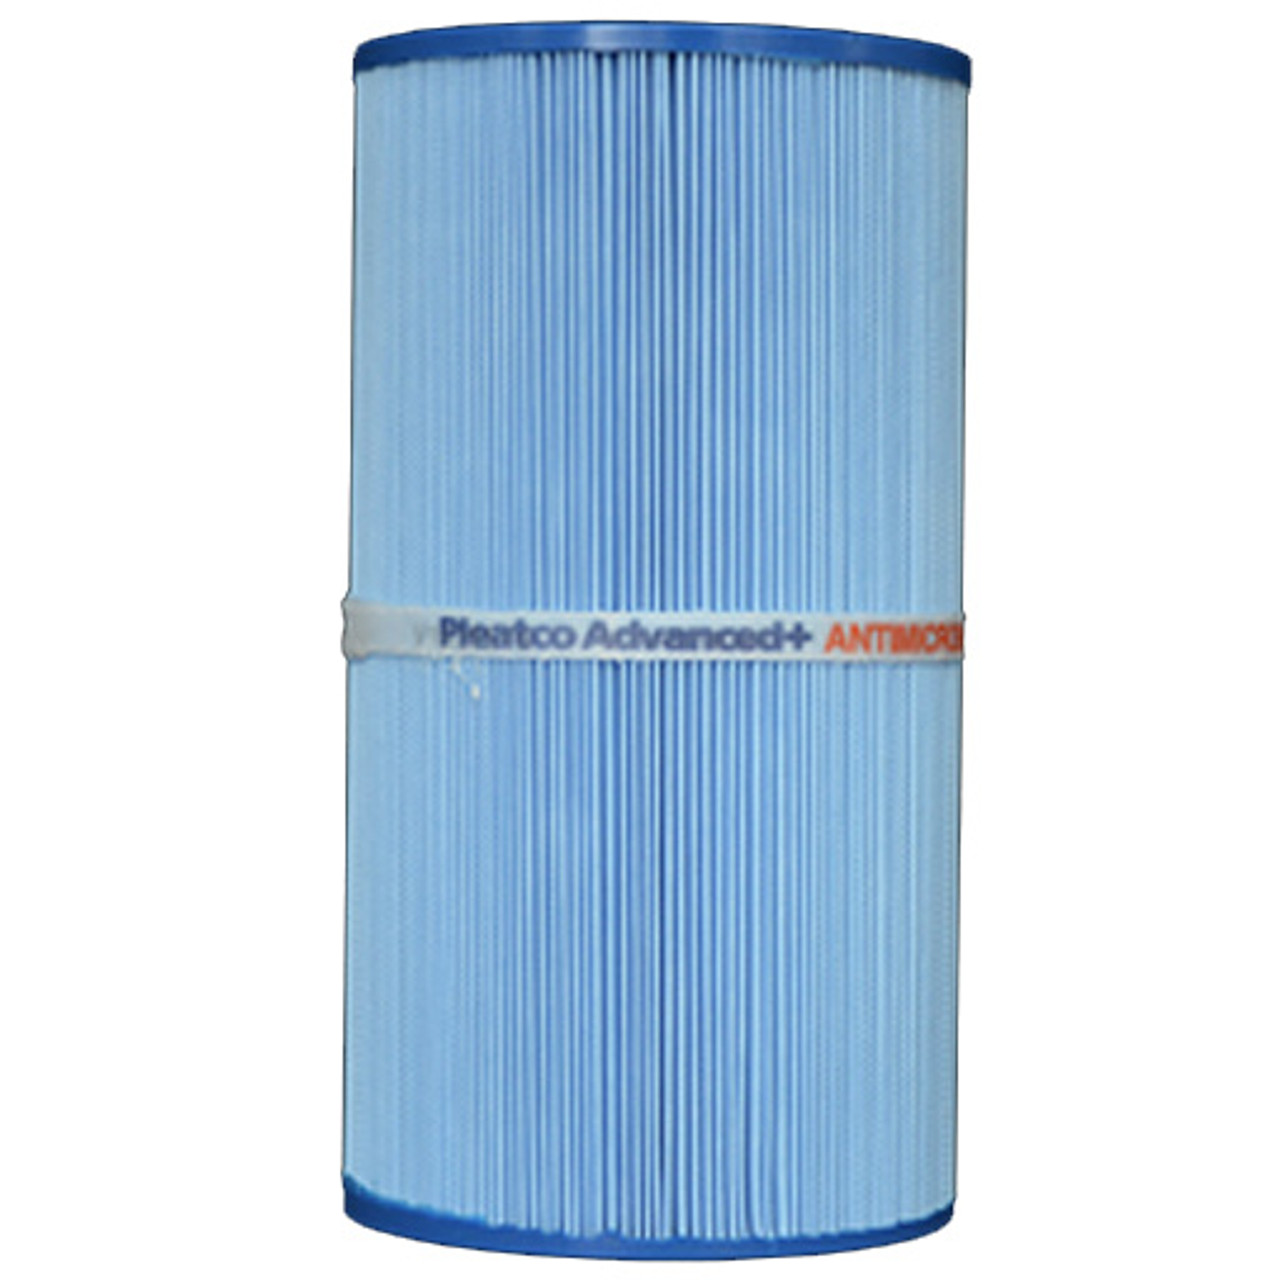 Master Spa - X268519 - PLBS50-M - Contractor Series Filter - Front View